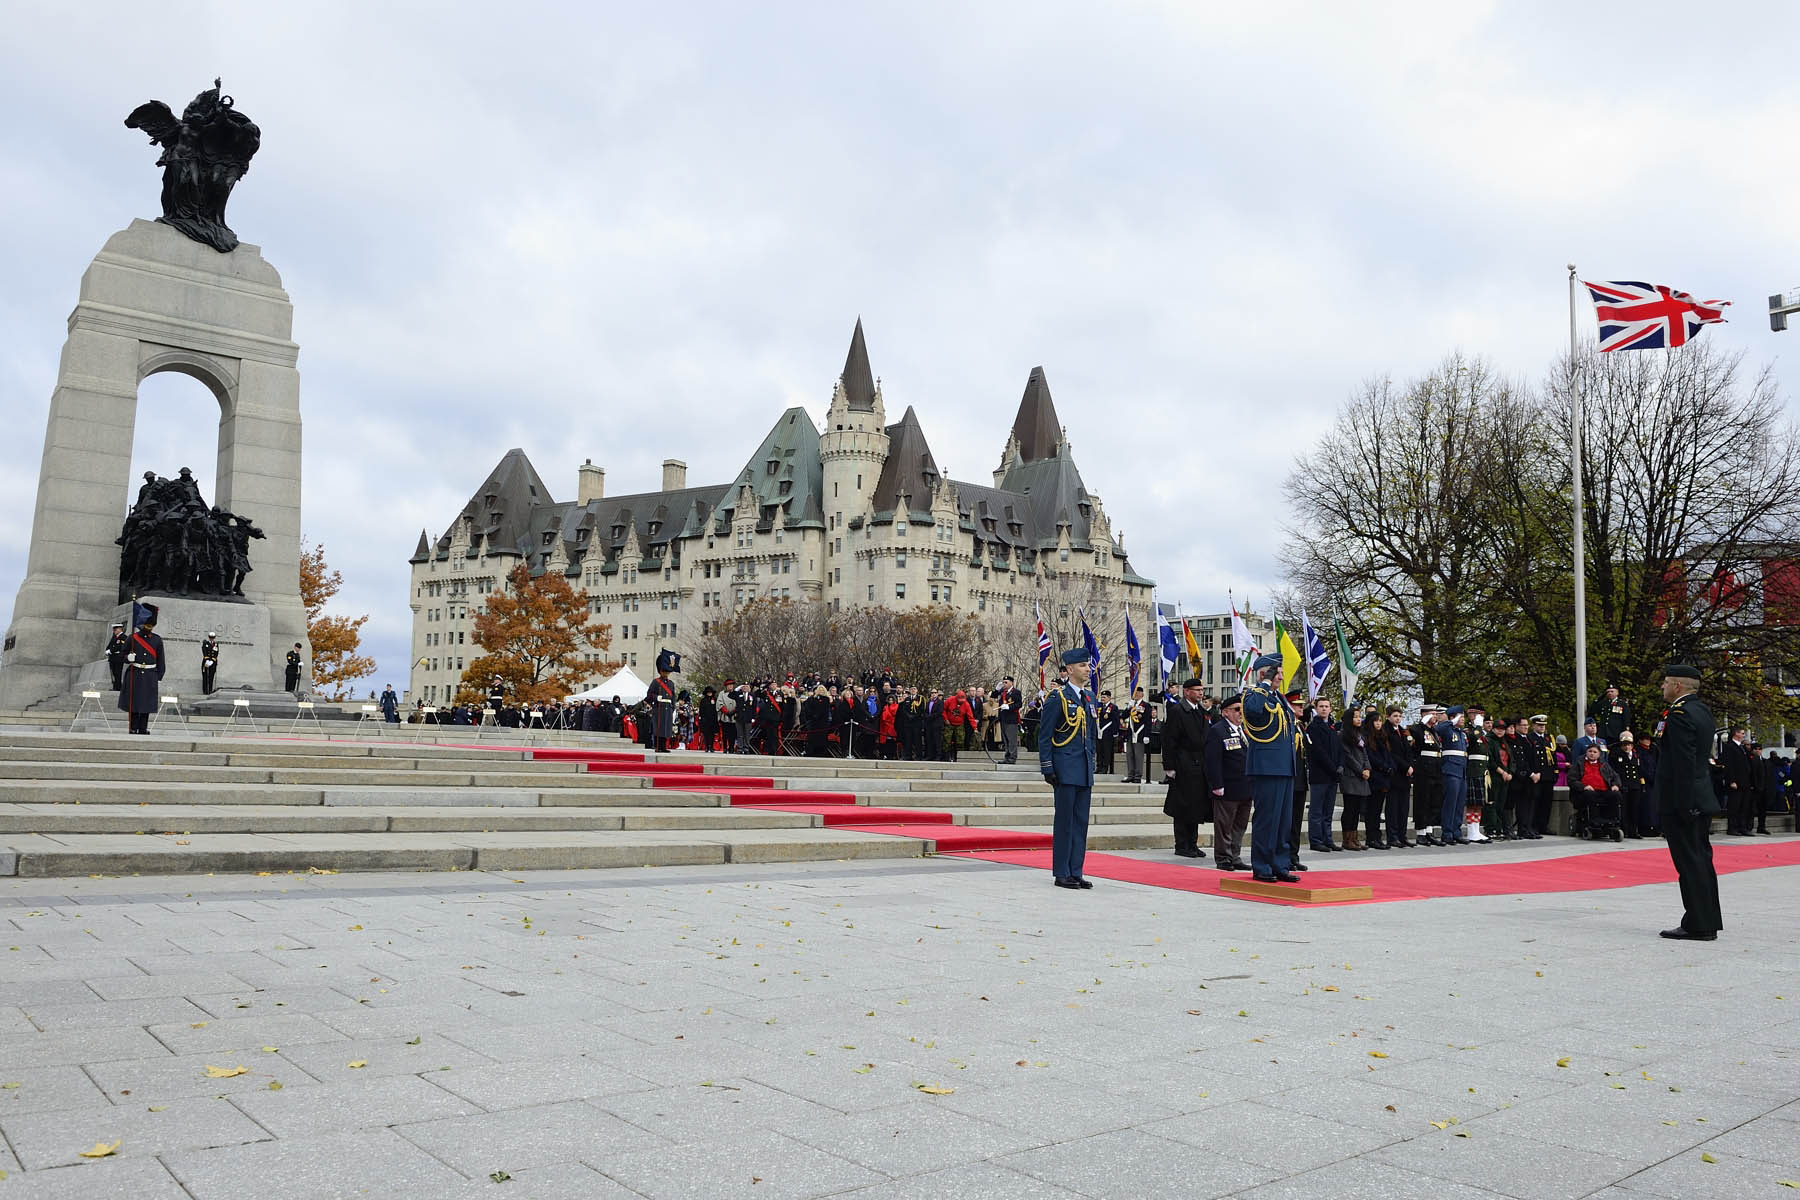 Their Excellencies the Right Honourable David Johnston, Governor General and Commander-in-Chief of Canada, and Mrs. Sharon Johnston attended the National Remembrance Day Ceremony at the National War Memorial, in Ottawa.